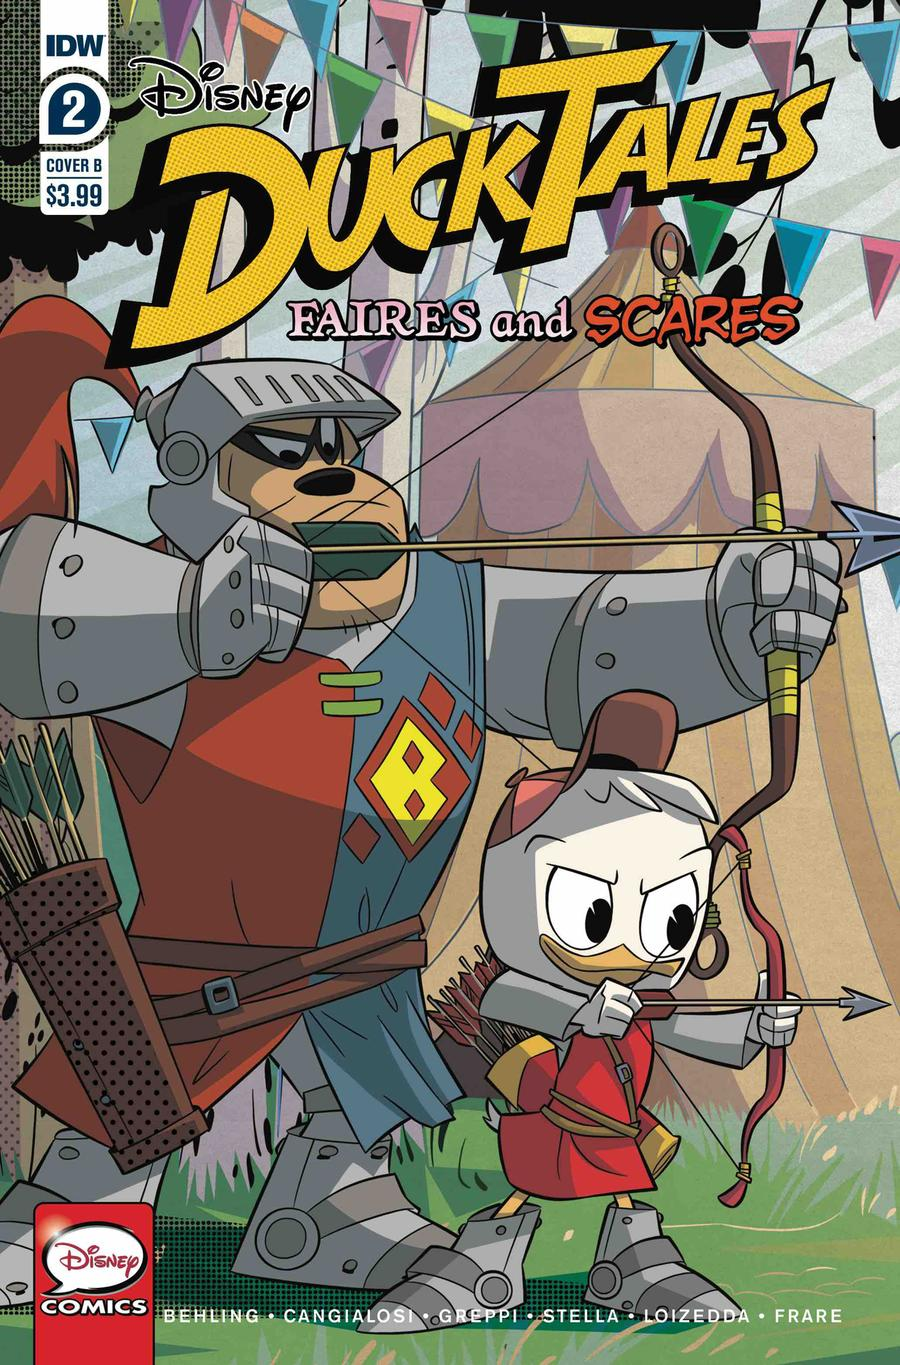 Ducktales Faires And Scares #2 Cover B Variant Cover